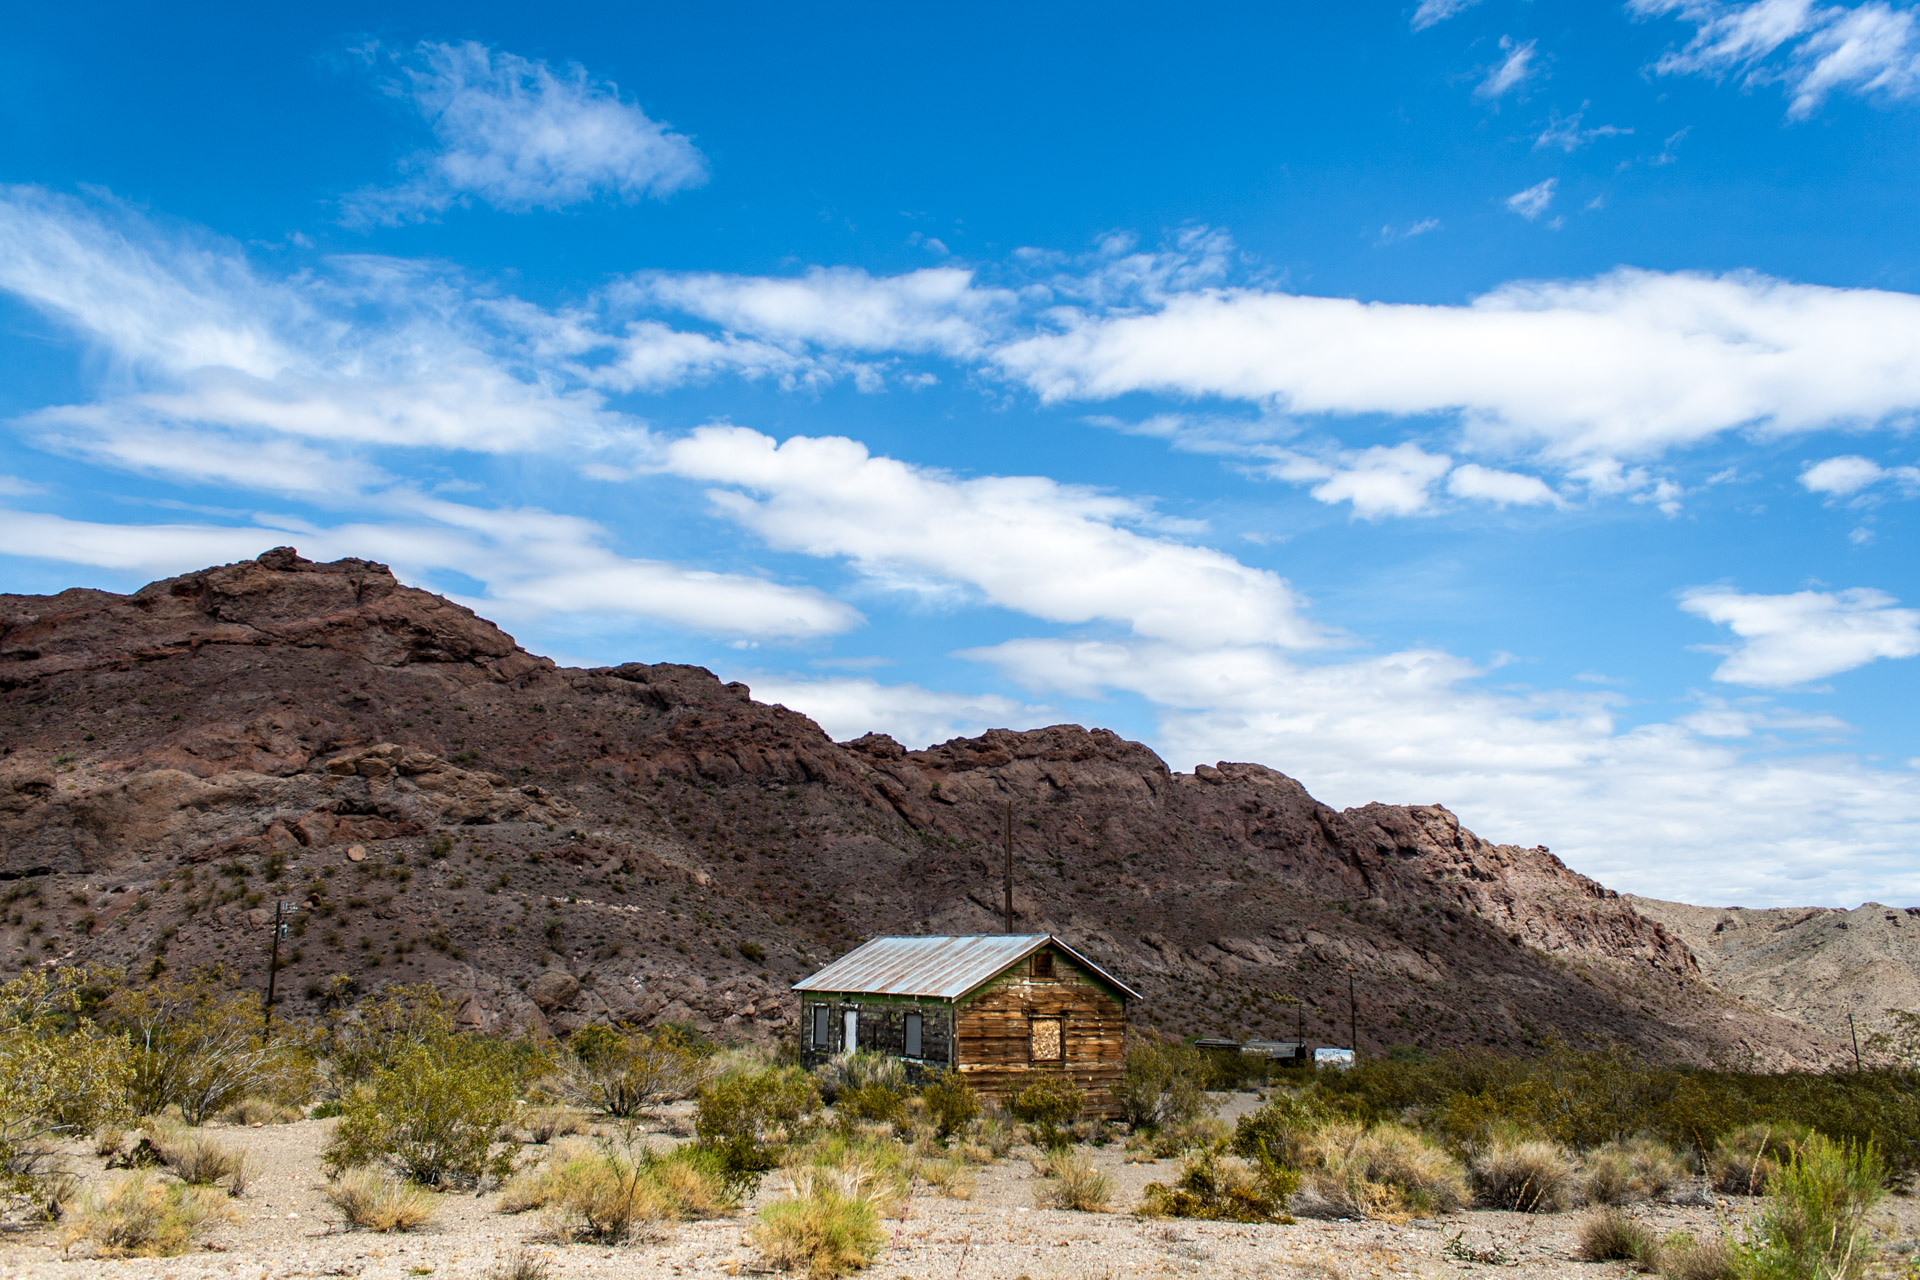 Nelson, Nevada - A Weathered Mining Town House (far)